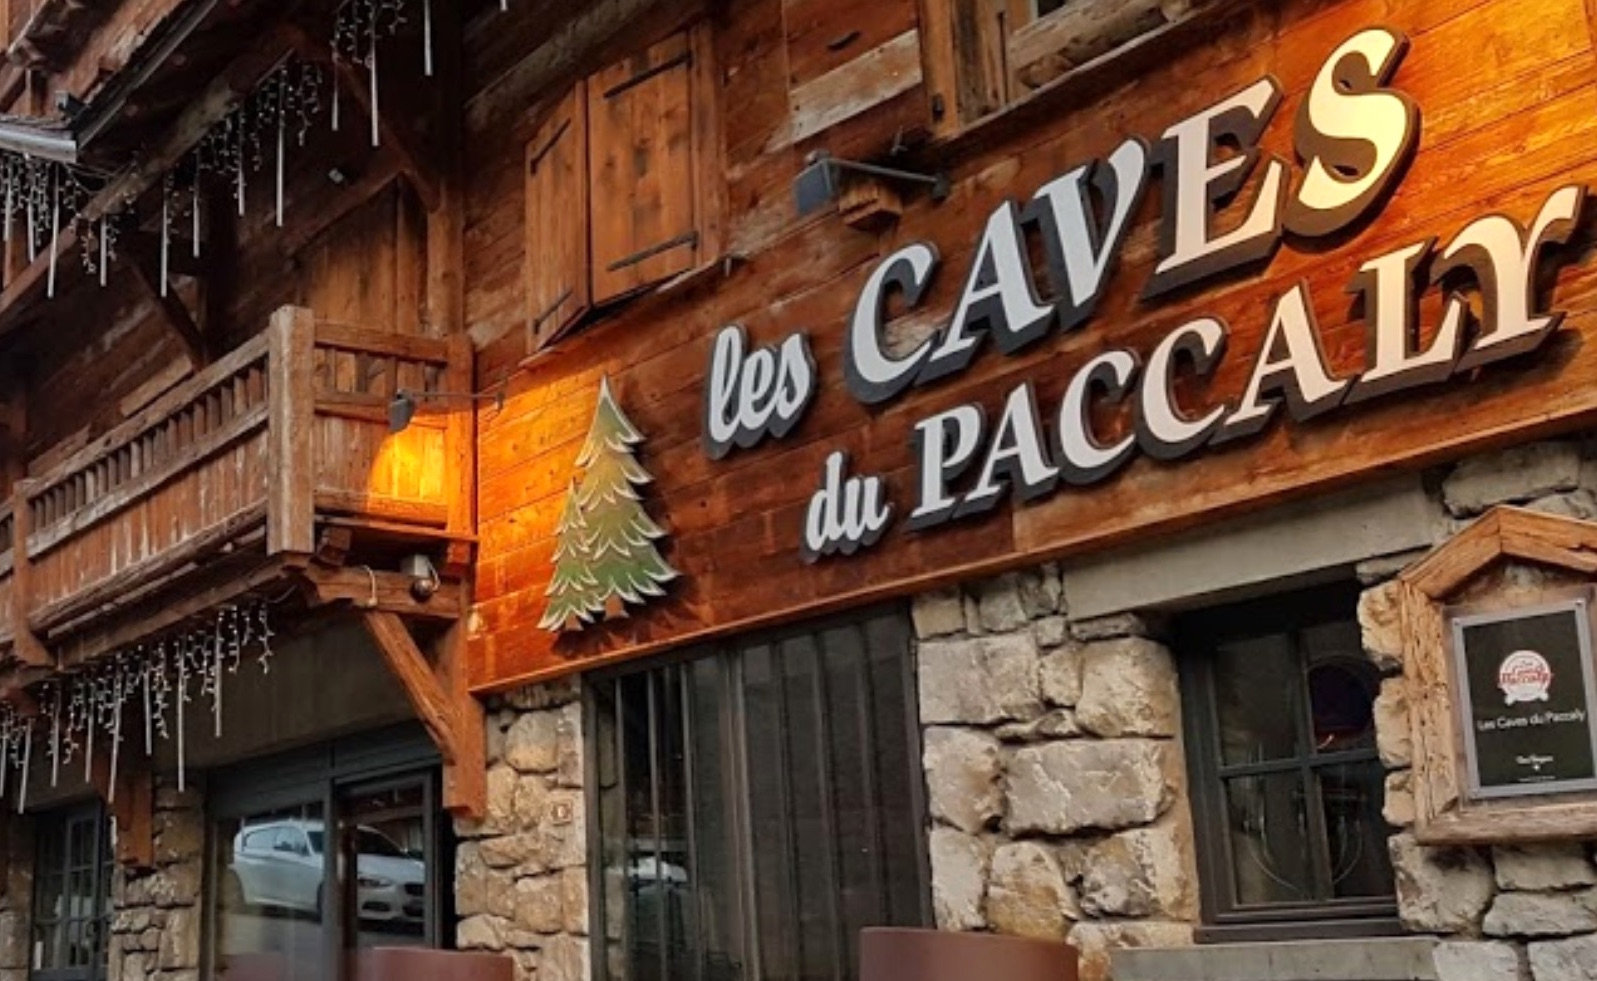 Les Caves du Paccaly